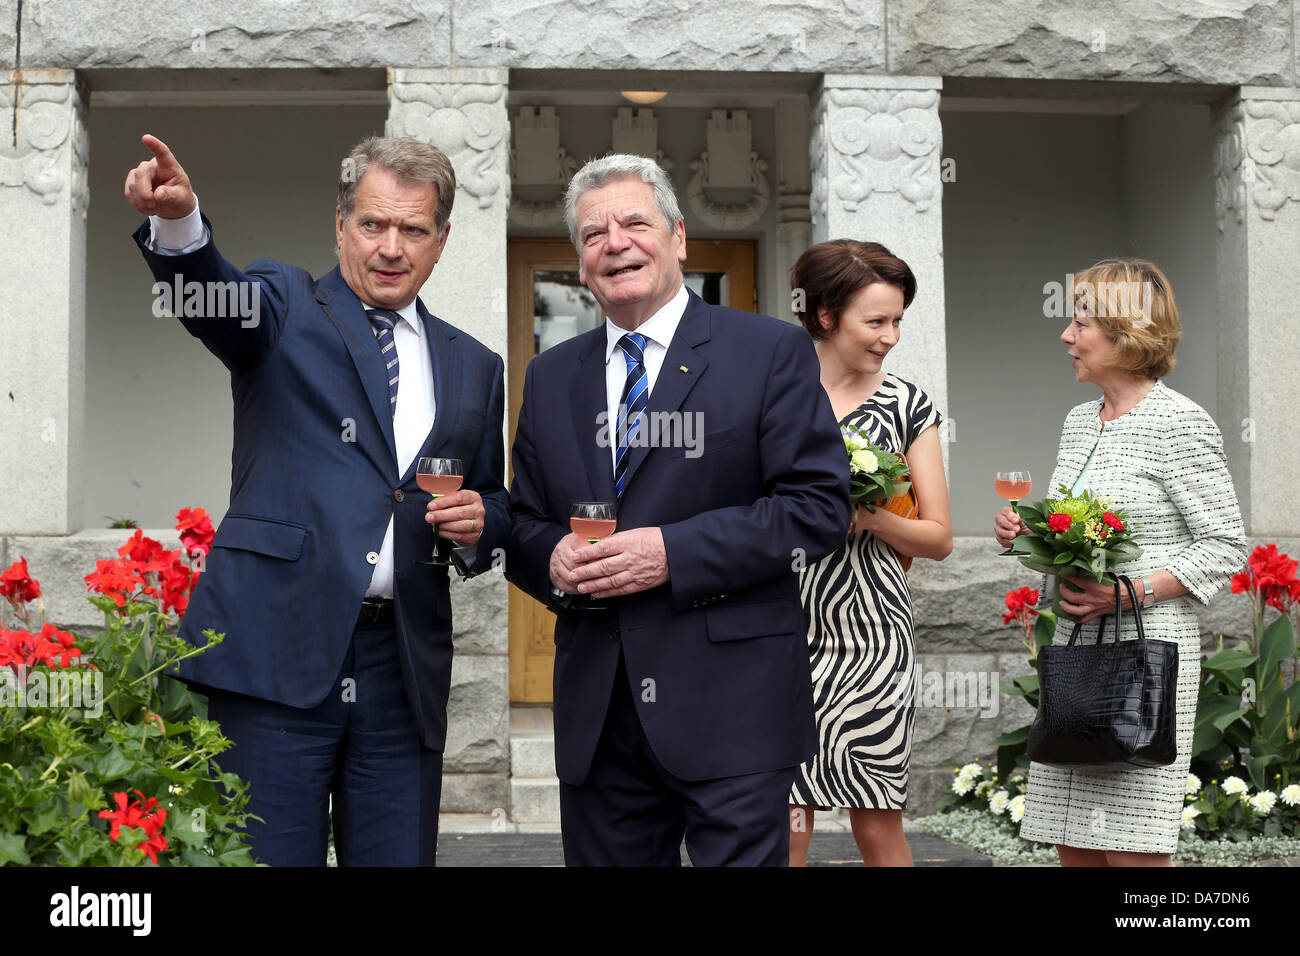 Naantali, Finland. 07th July, 2013. German President Joachim Gauck and his partner Daniela Schadt (R) are welcomed - Stock Image